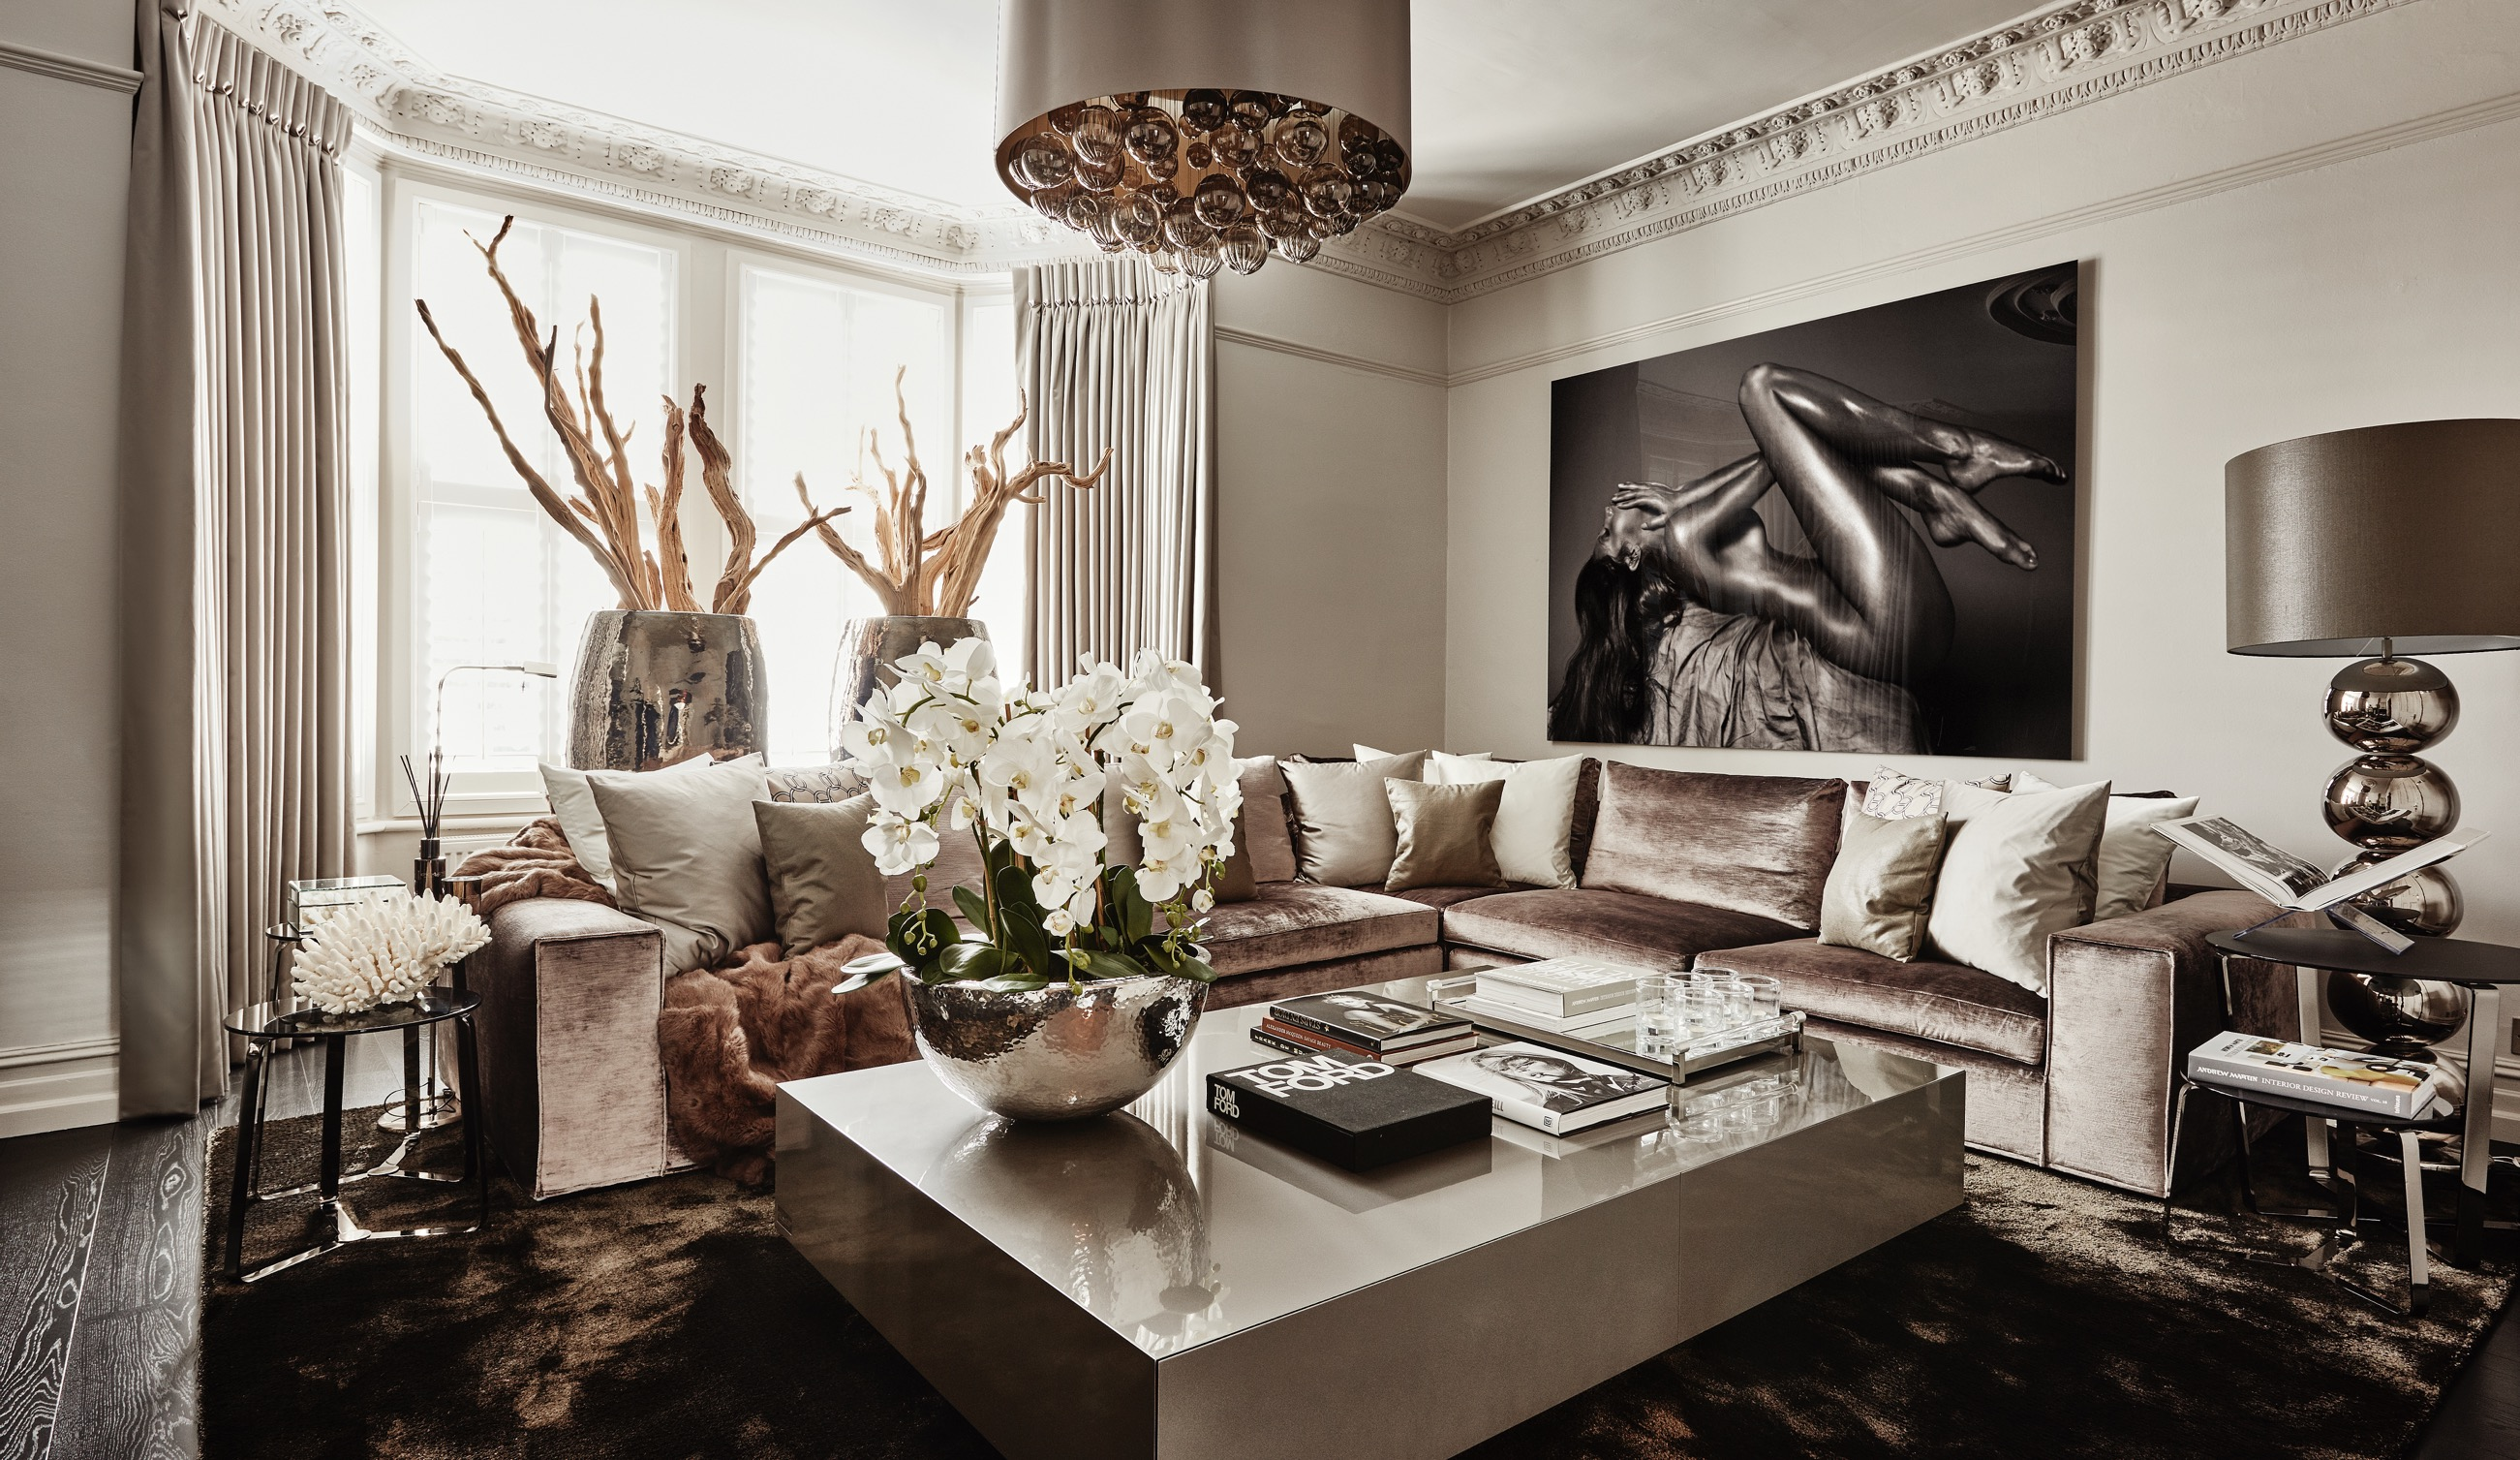 Town house projects eric kuster metropolitan luxury for Interieur inspiratie woonkamer